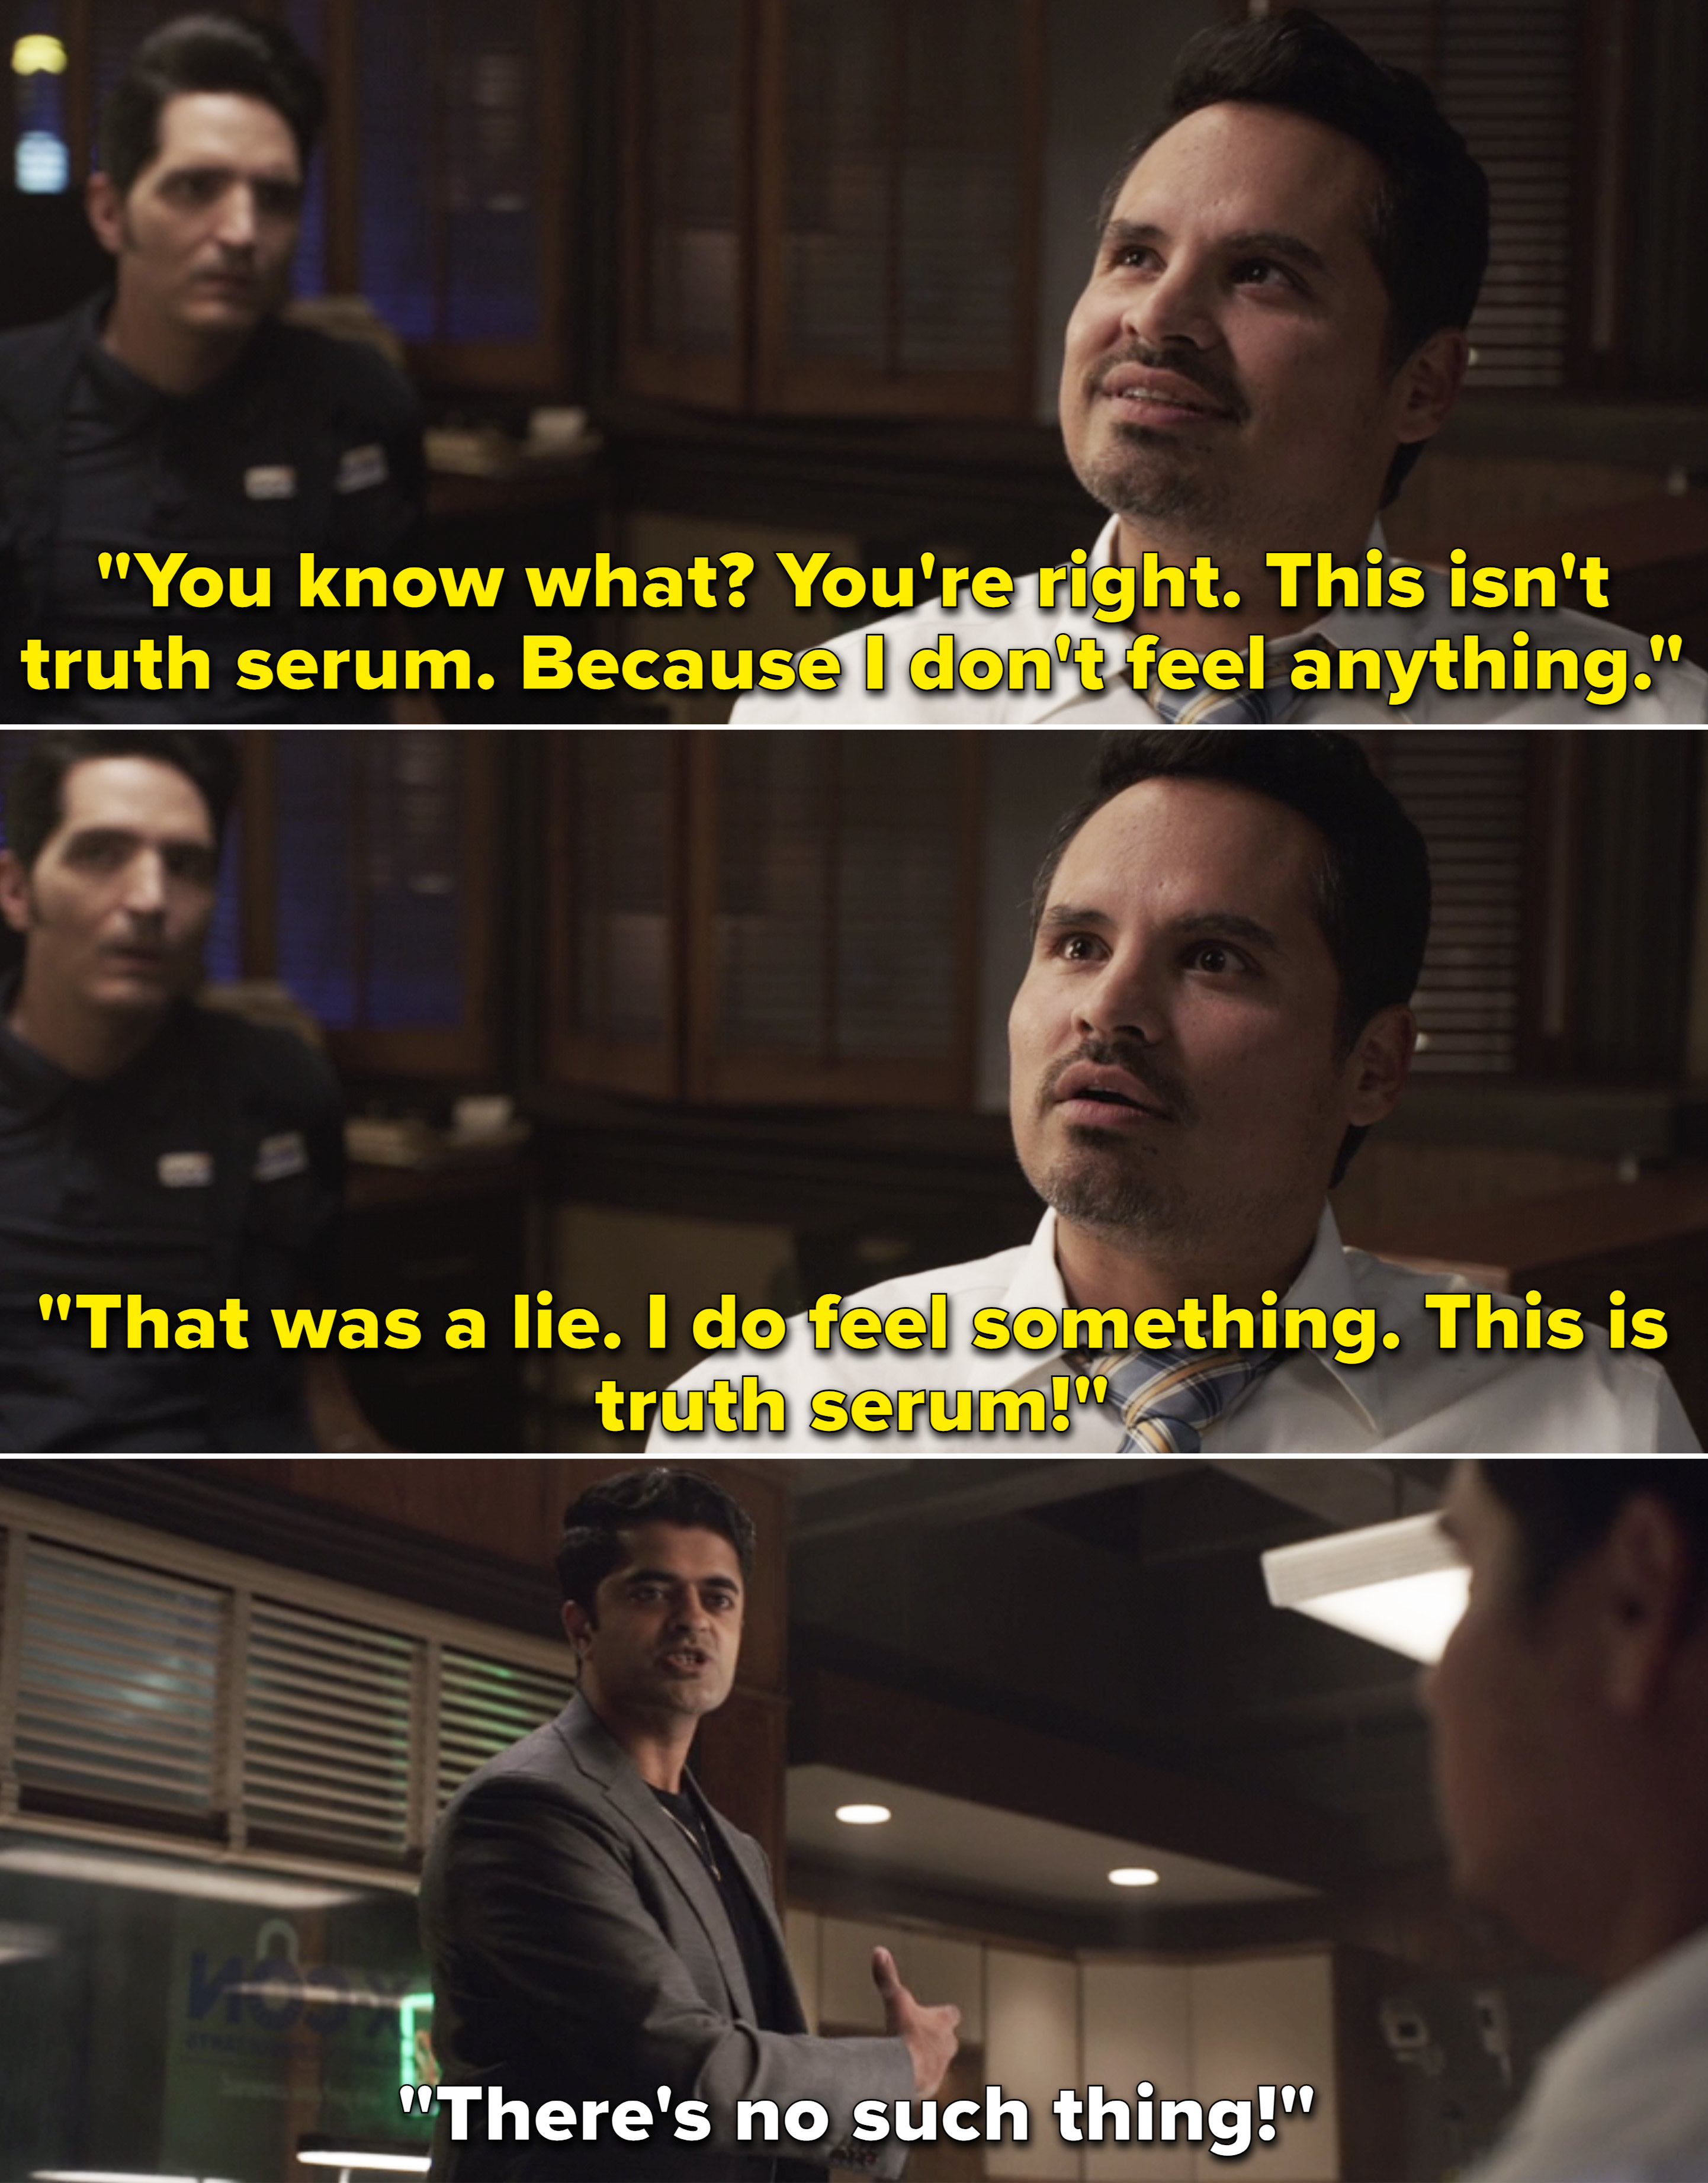 Luis saying this must be truth serum because he just lied